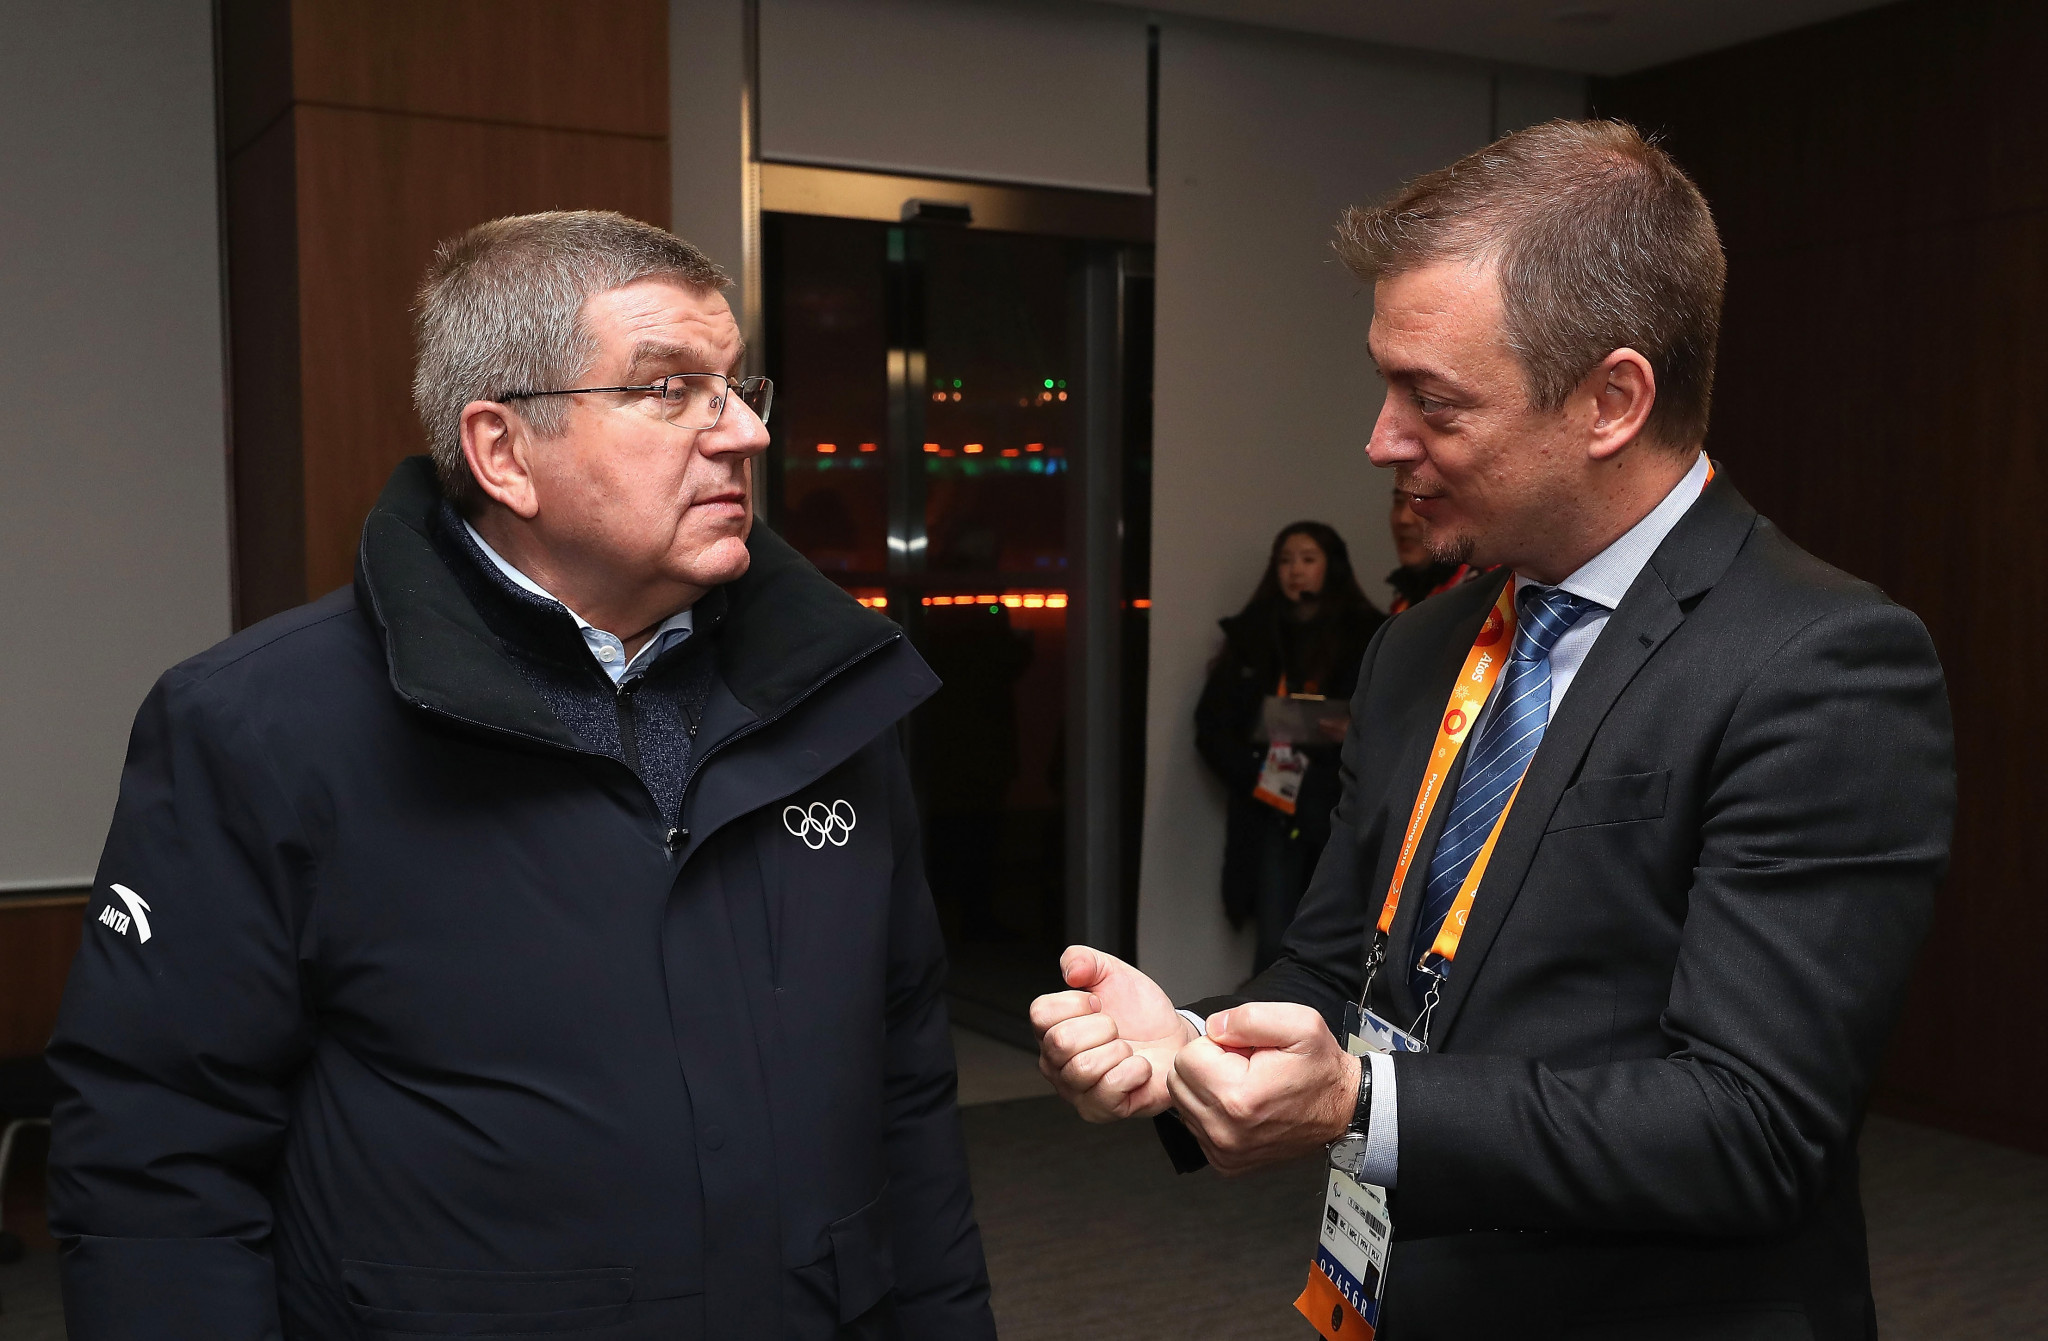 IOC President Thomas Bach, left, and IPC President Andrew Parsons recently signed an extension to their cooperation agreement ©Getty Images